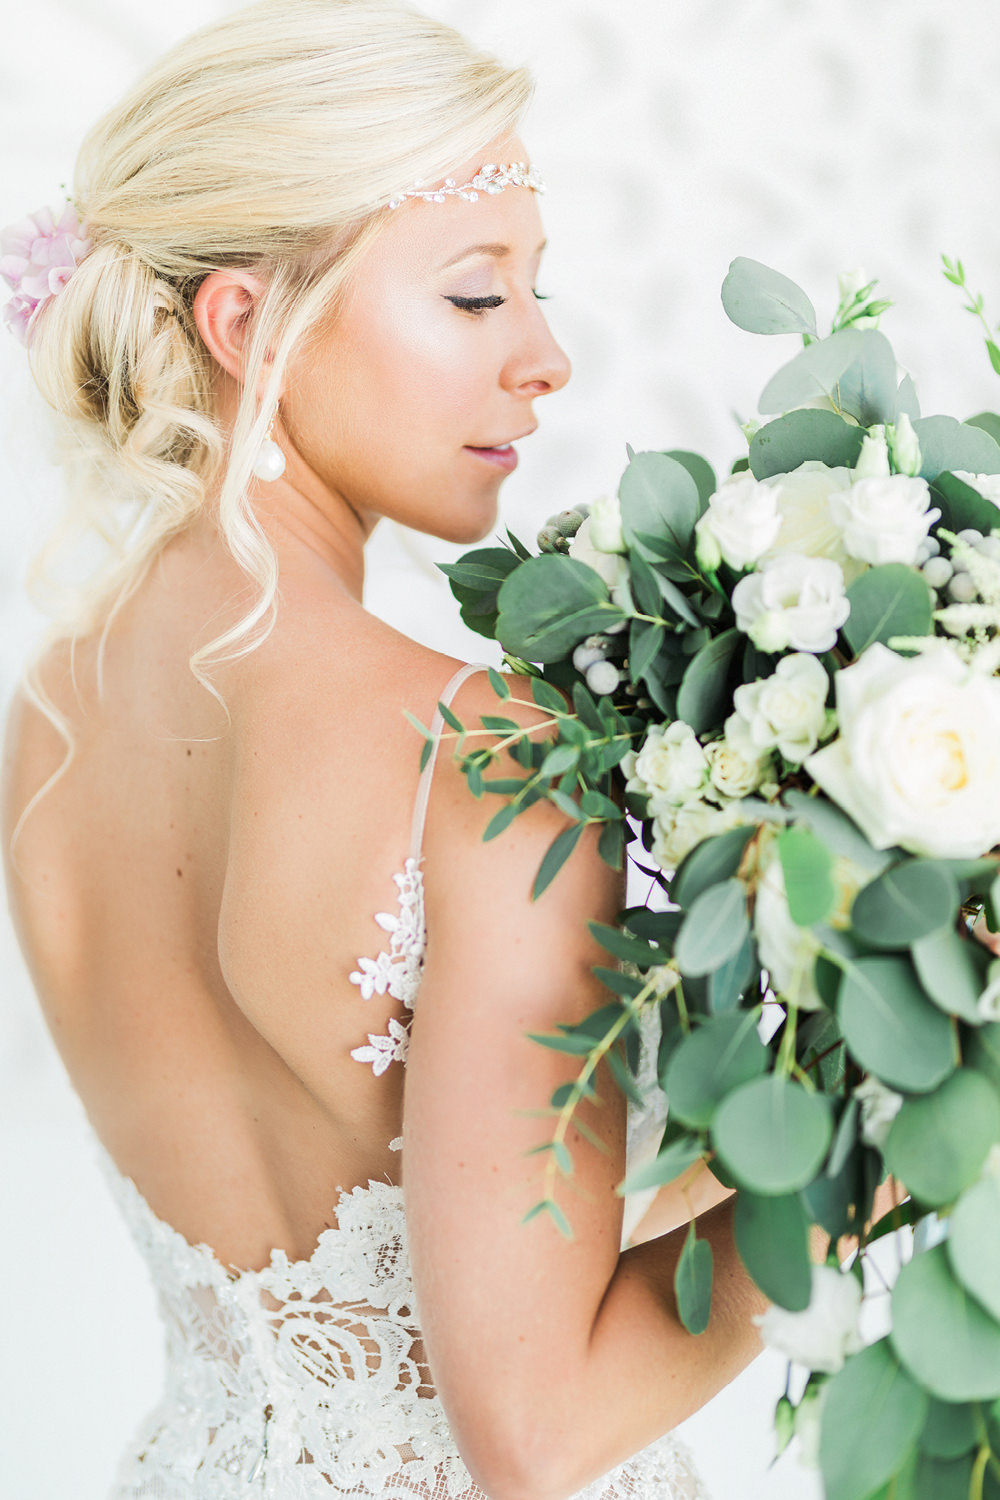 portugal fineart wedding photography bride portrait bouquet